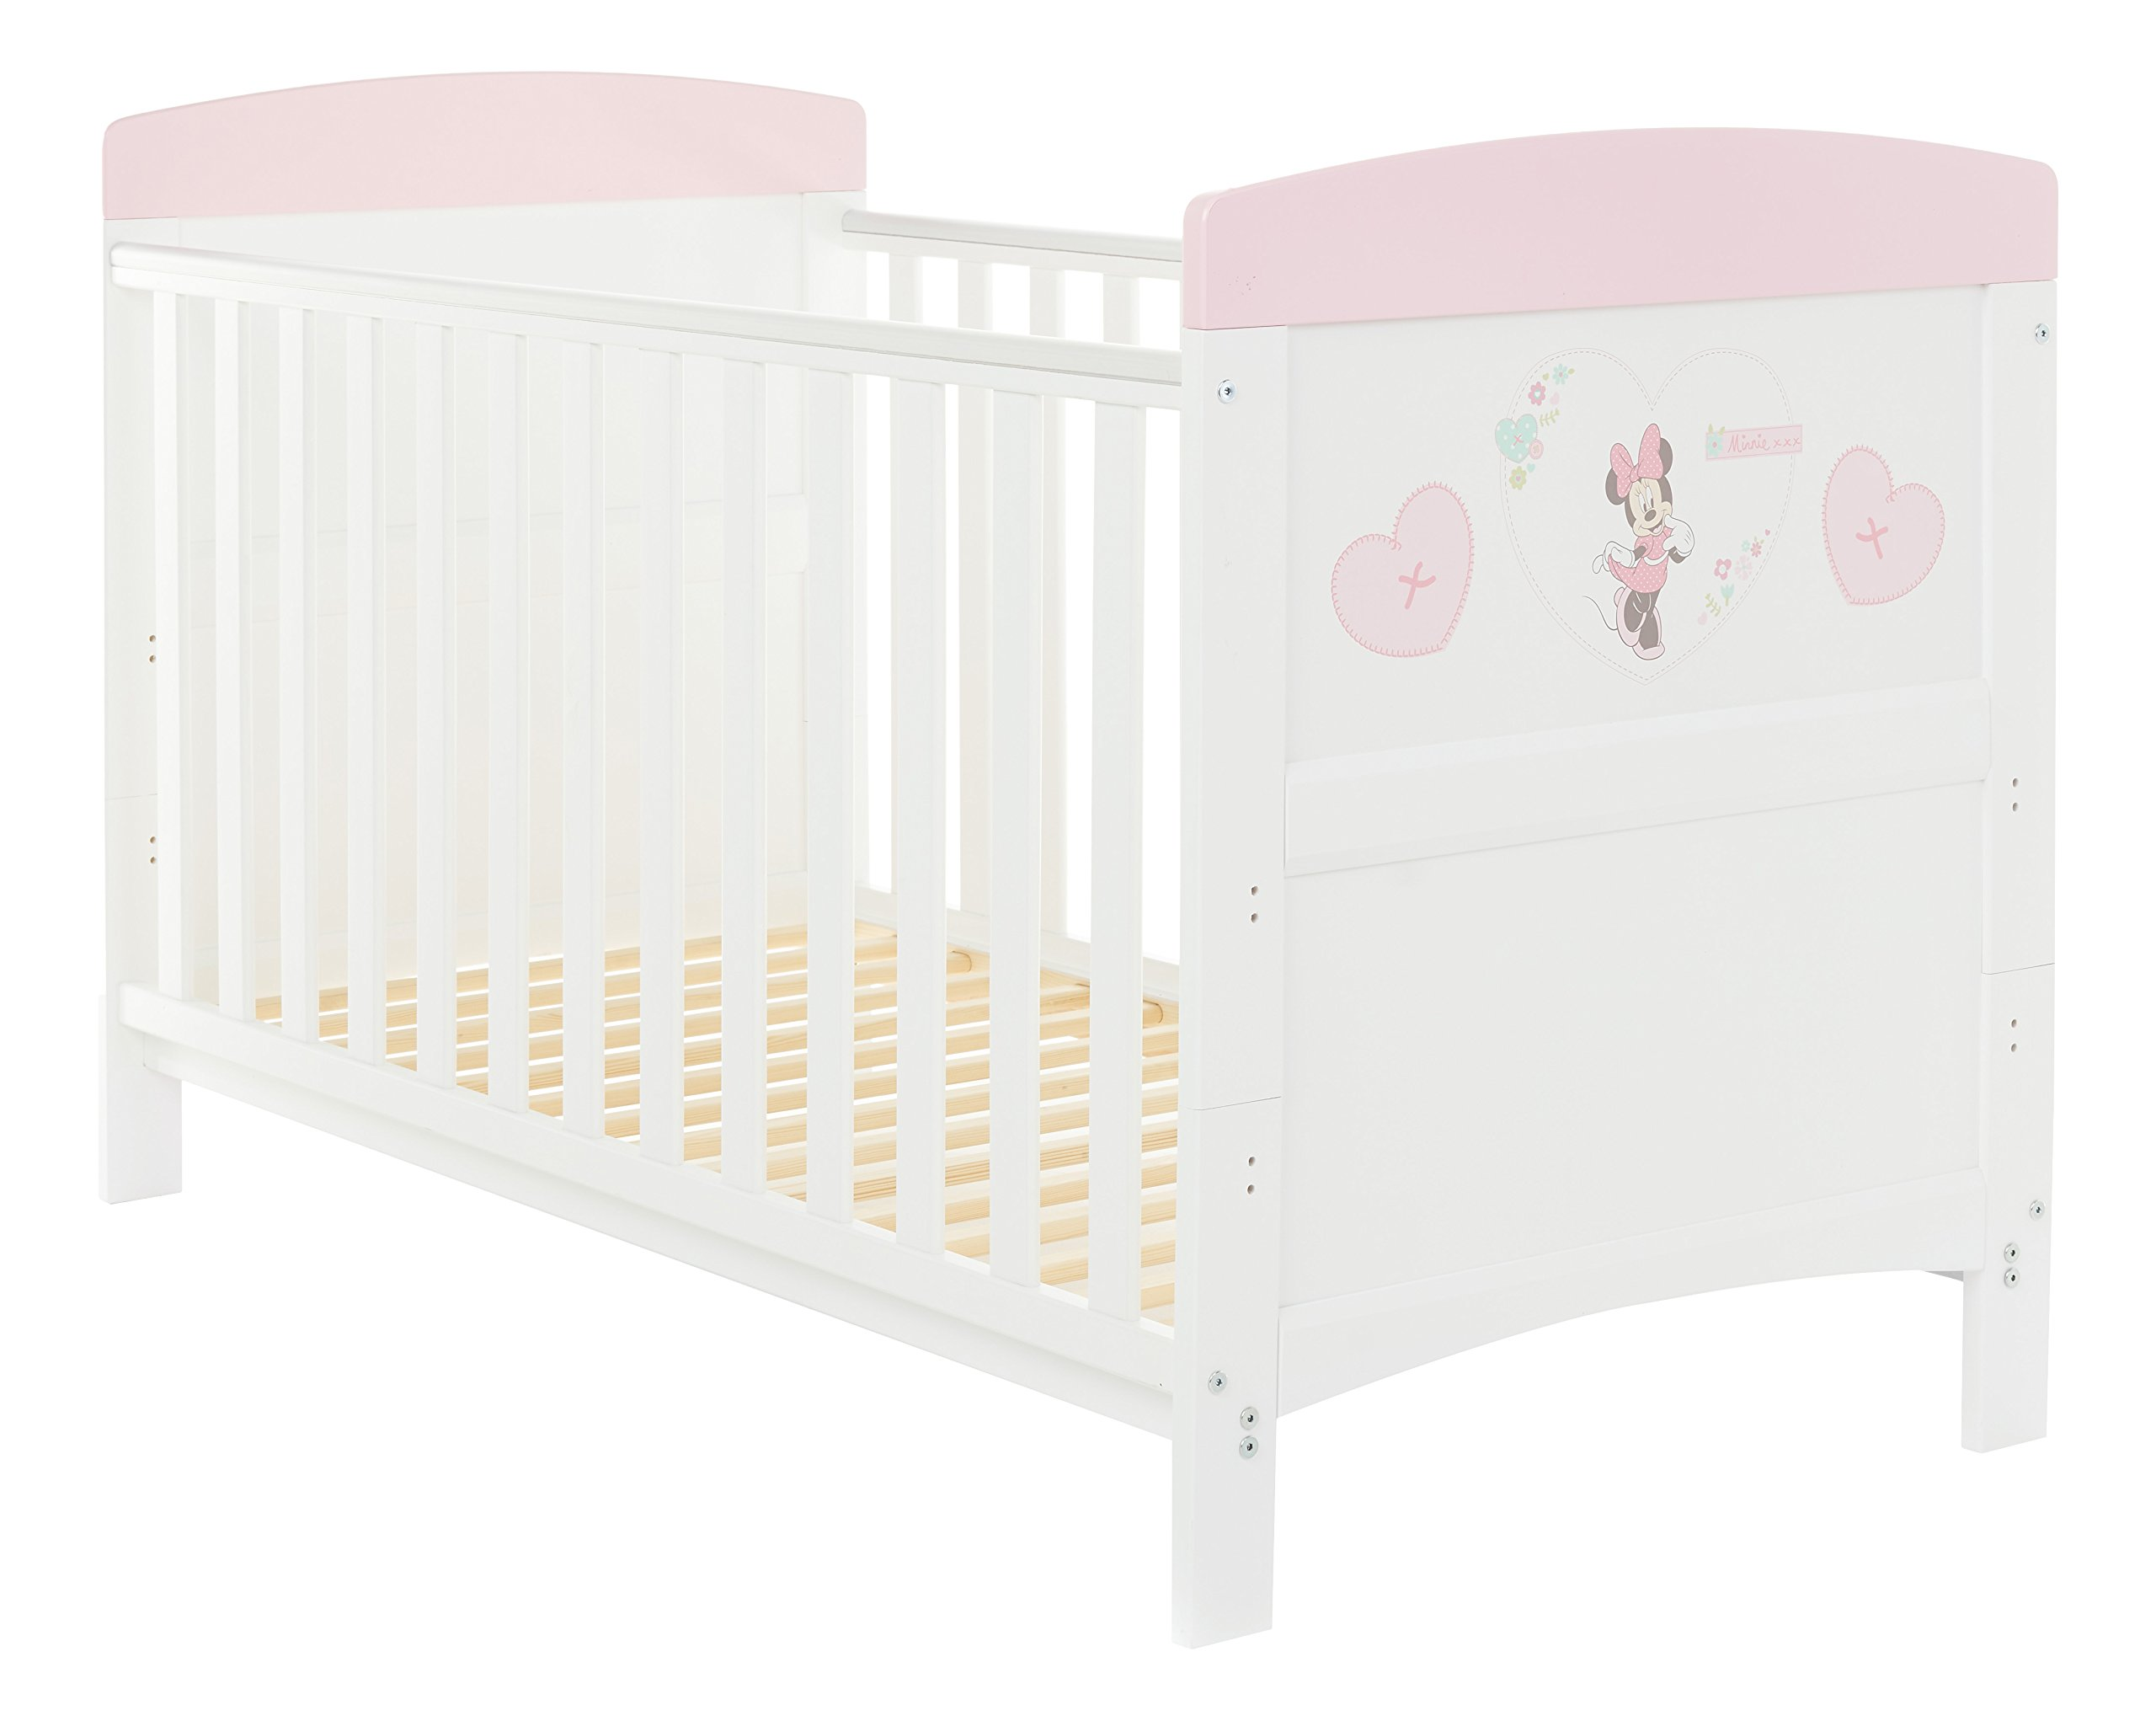 Disney Minnie Mouse Inspire Cot Bed - Hearts Obaby Adjustable 3 position mattress height Bed ends split to transforms into toddler bed Protective teething rails along both sides 1